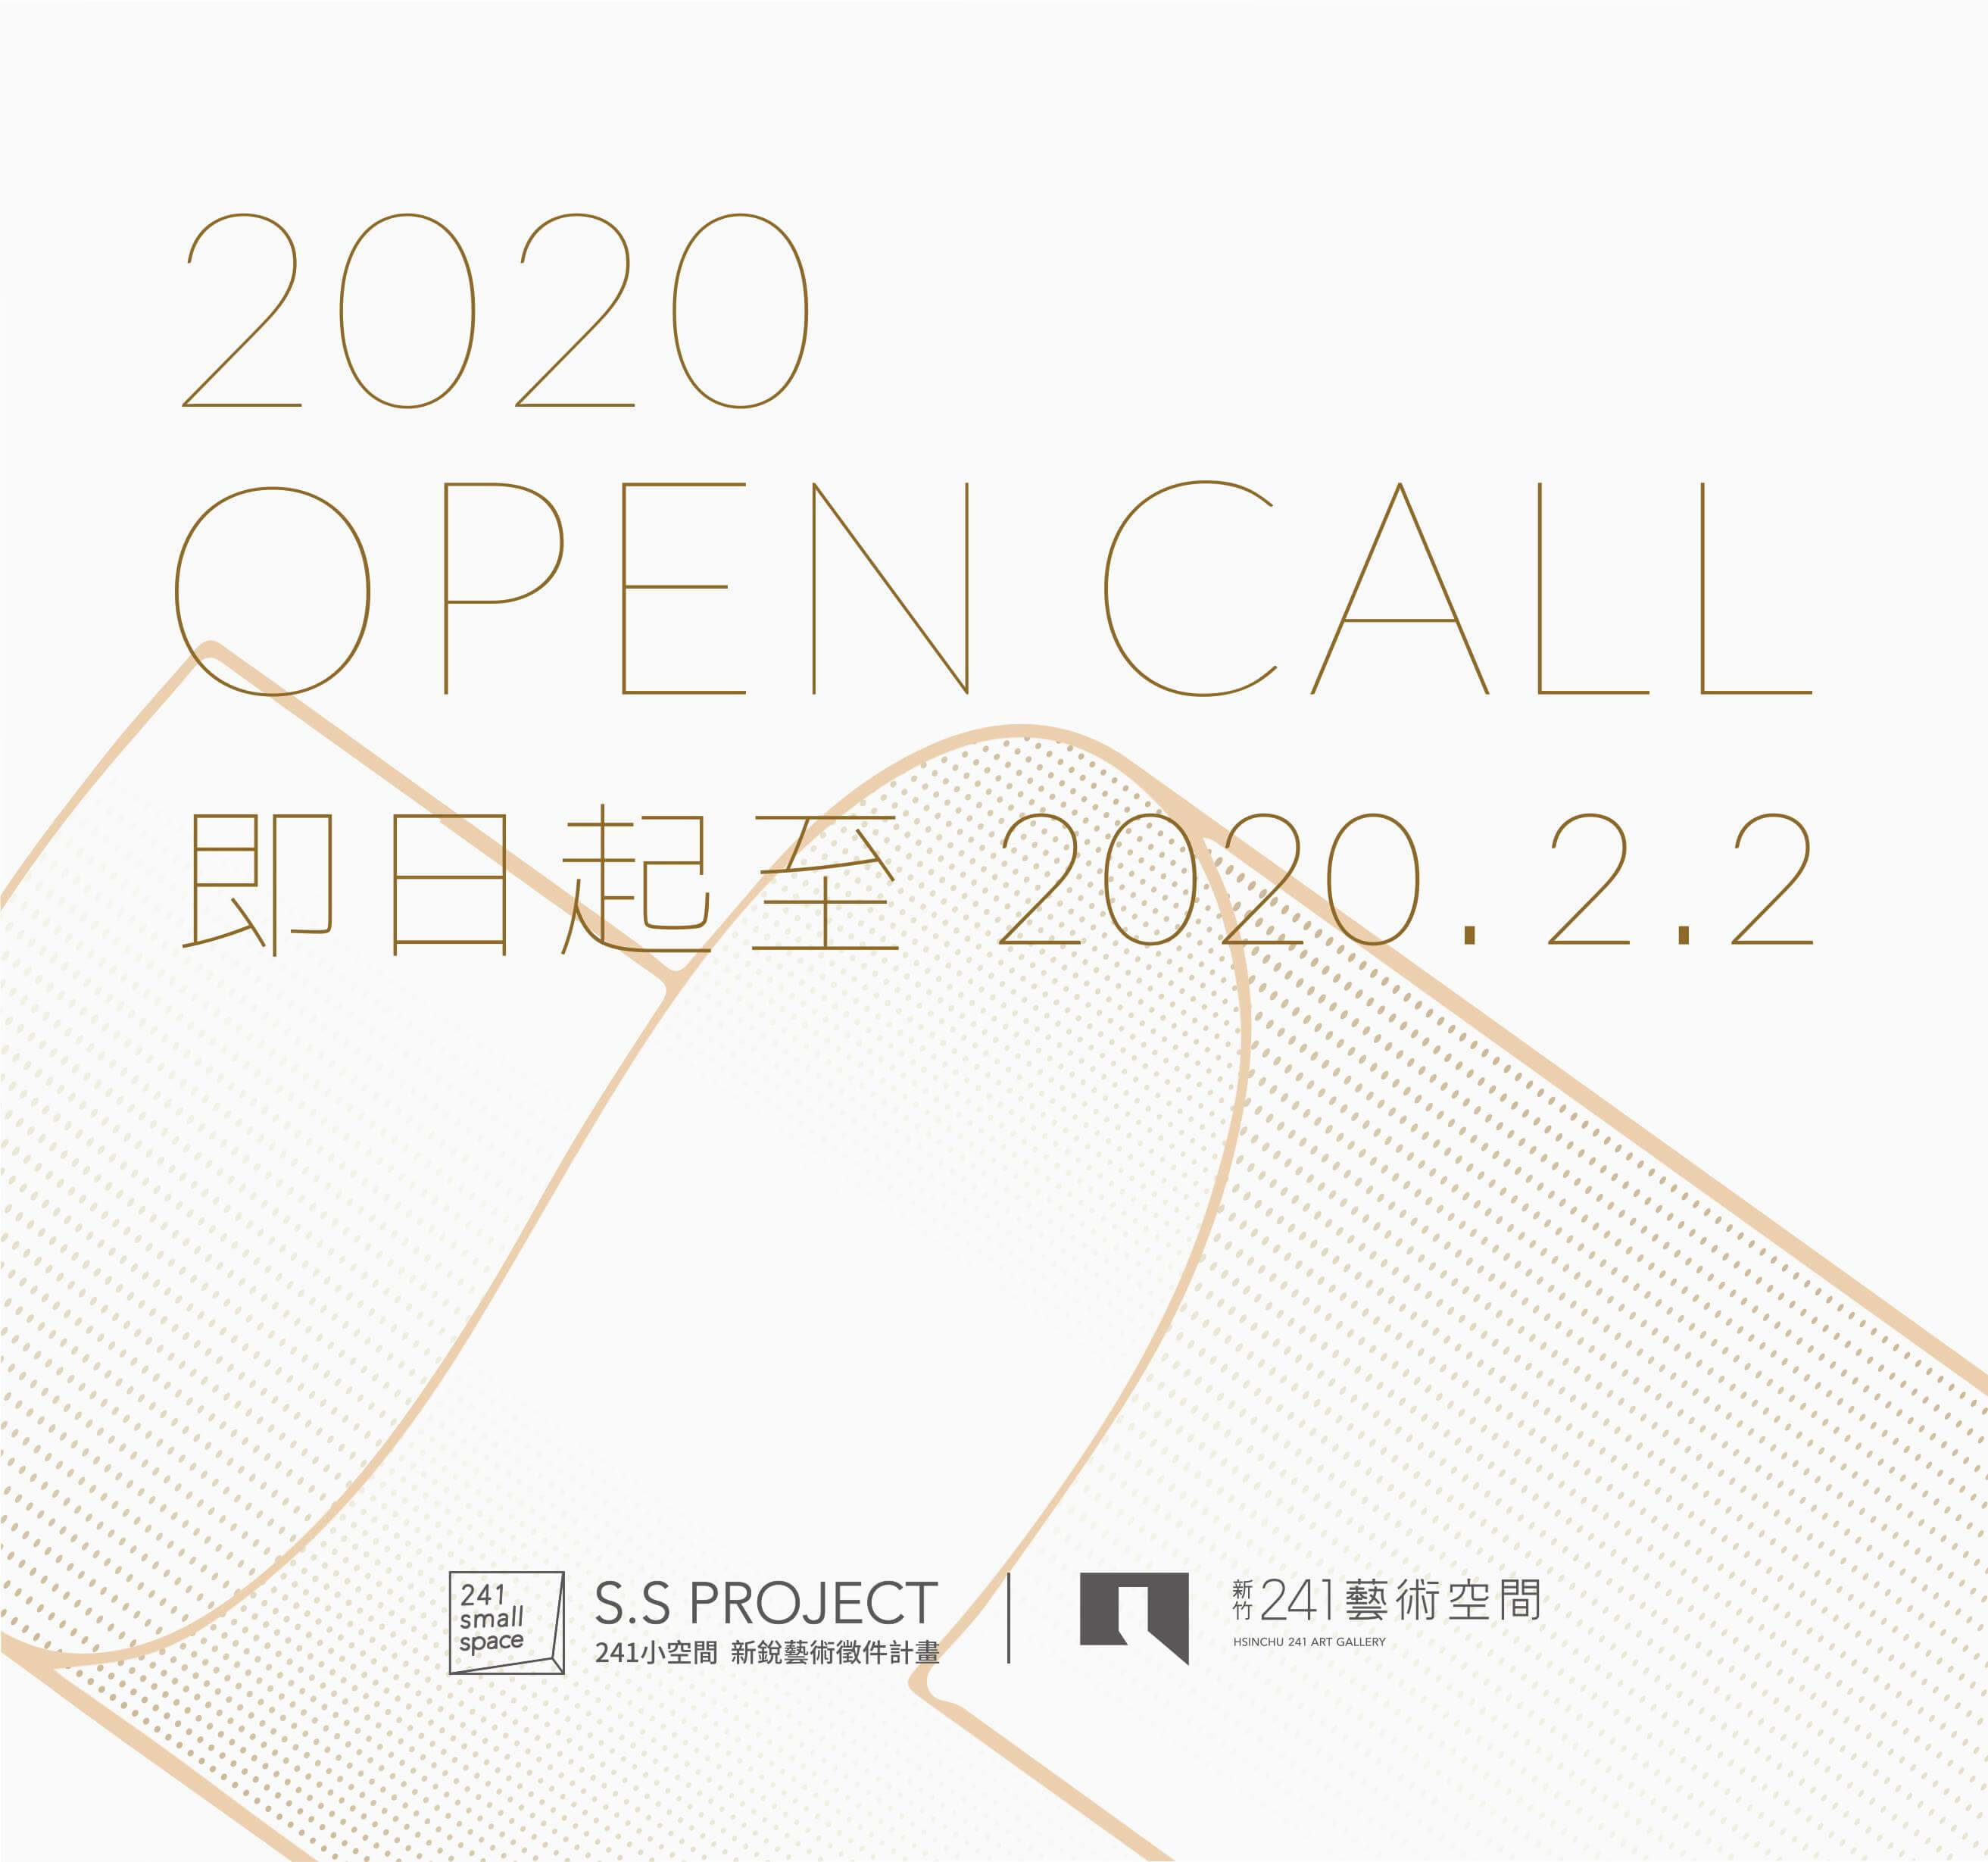 https://www.hsinchucitymuseum.org/2020 241SS新銳藝術徵件計劃 241 Small Space Project